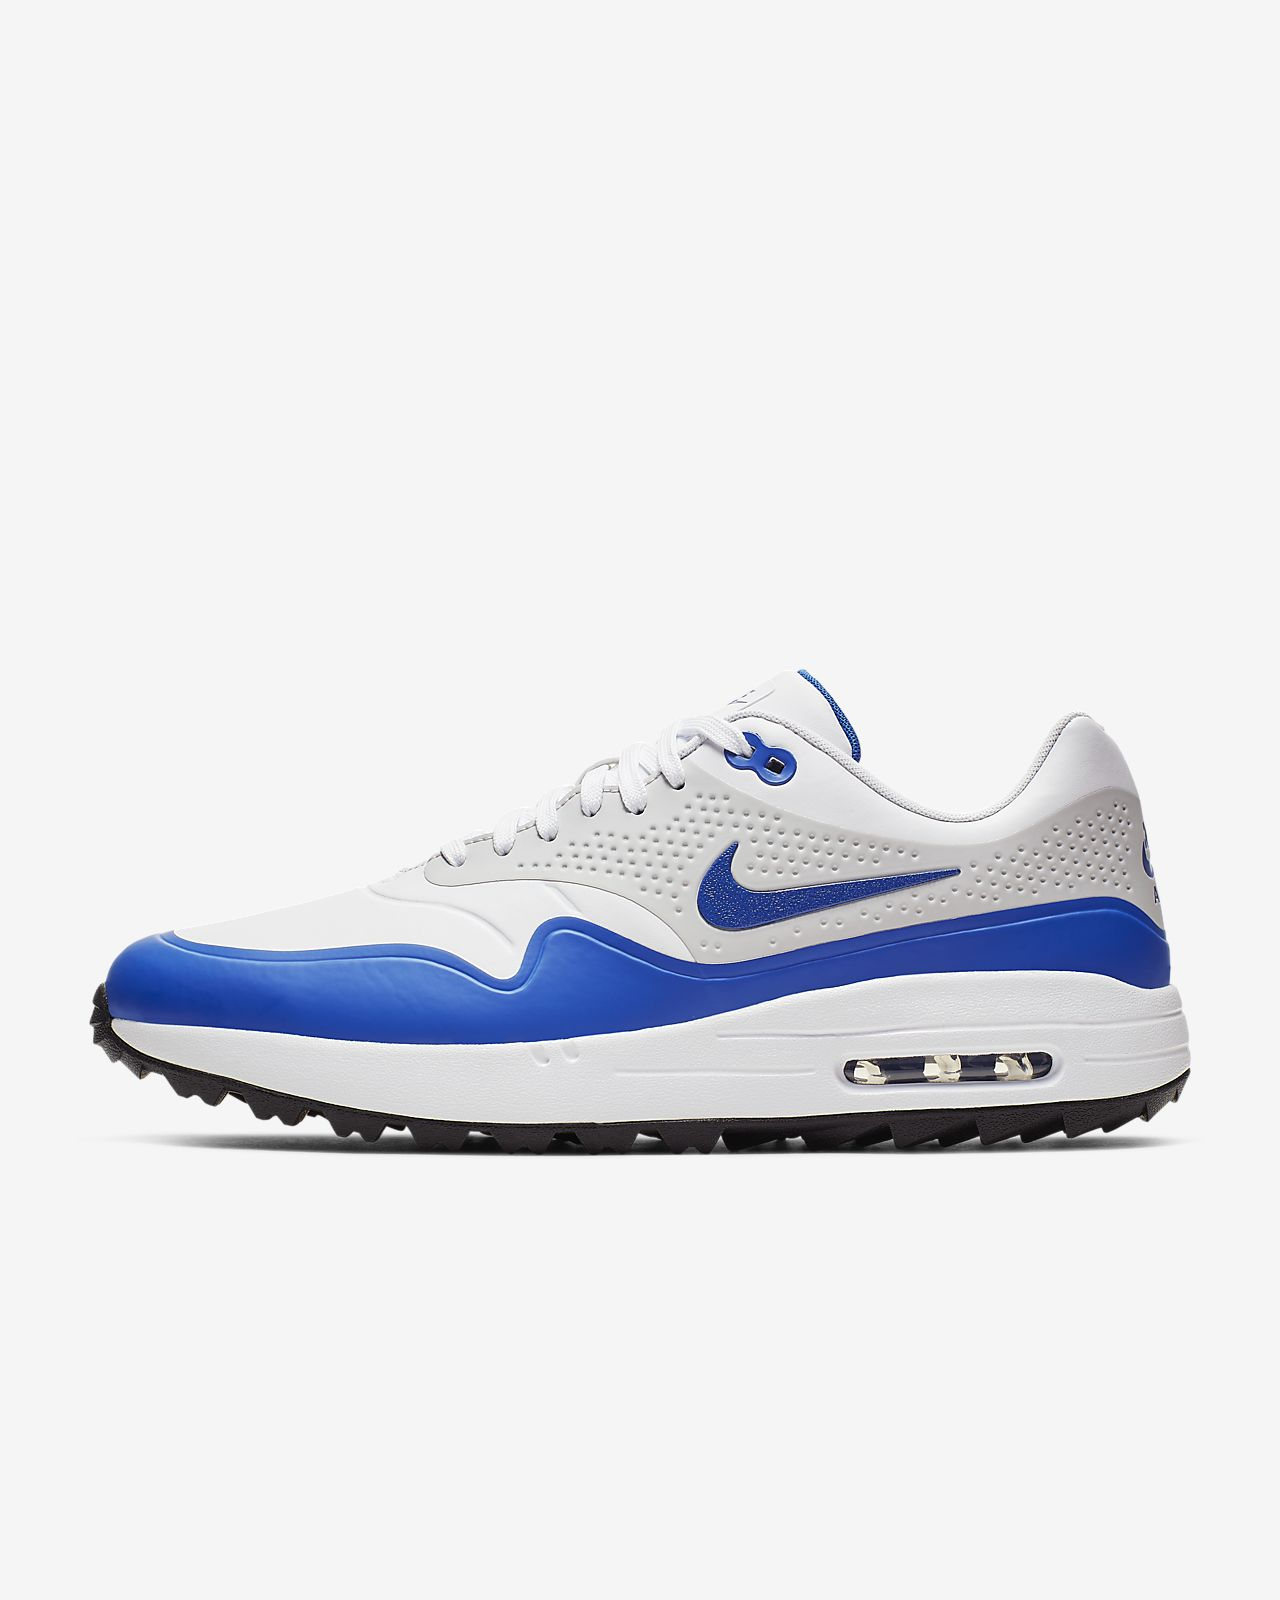 1f911150cb63e Nike Air Max 1 G Men's Golf Shoe. Nike.com